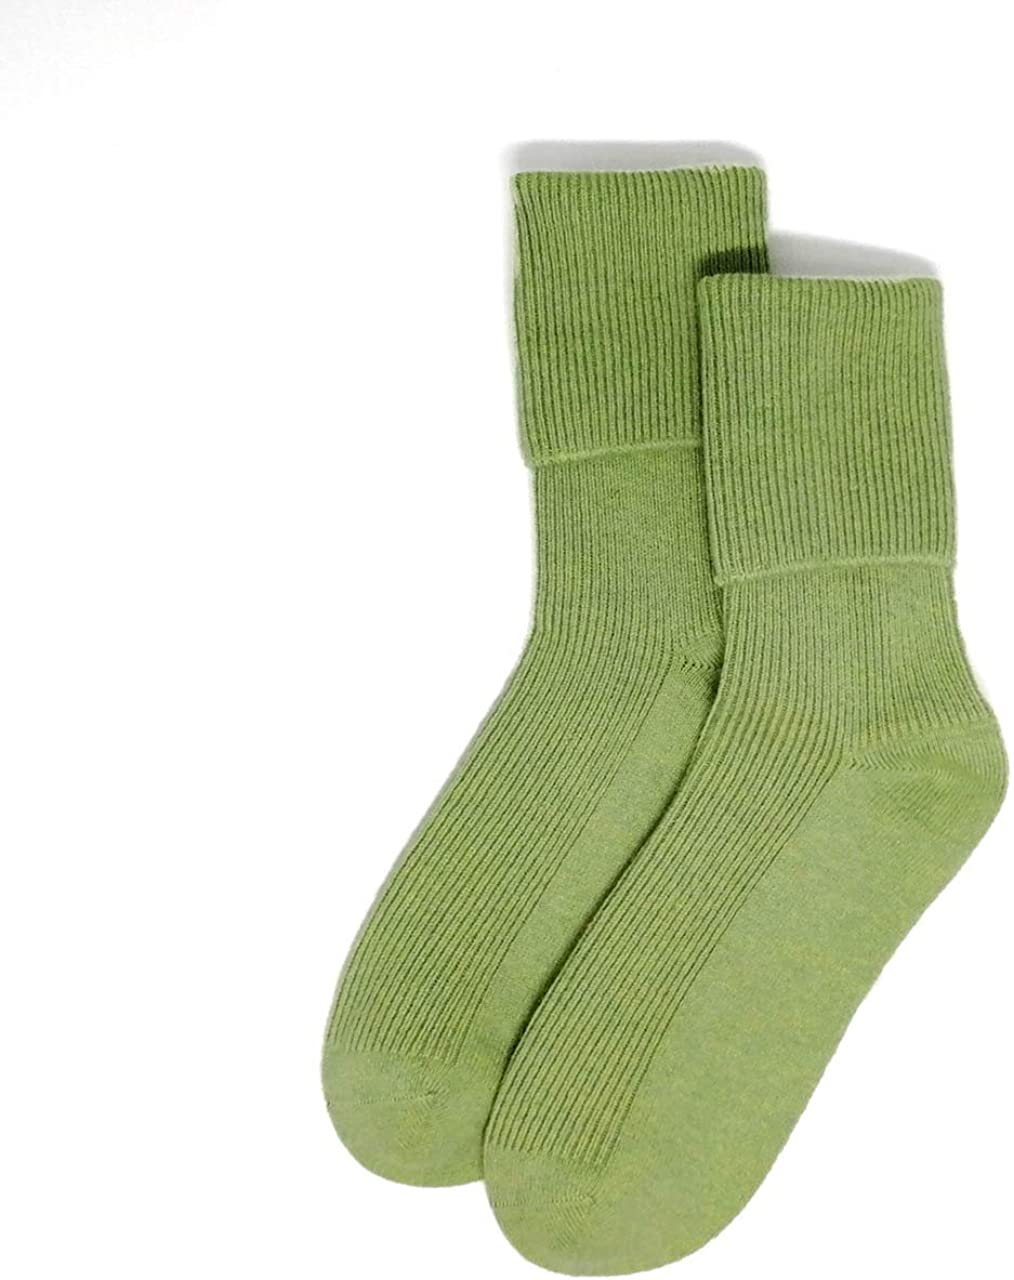 2 Pairs of Ladies Cashmere Blend Luxury Ankle Socks Black Size 4-7